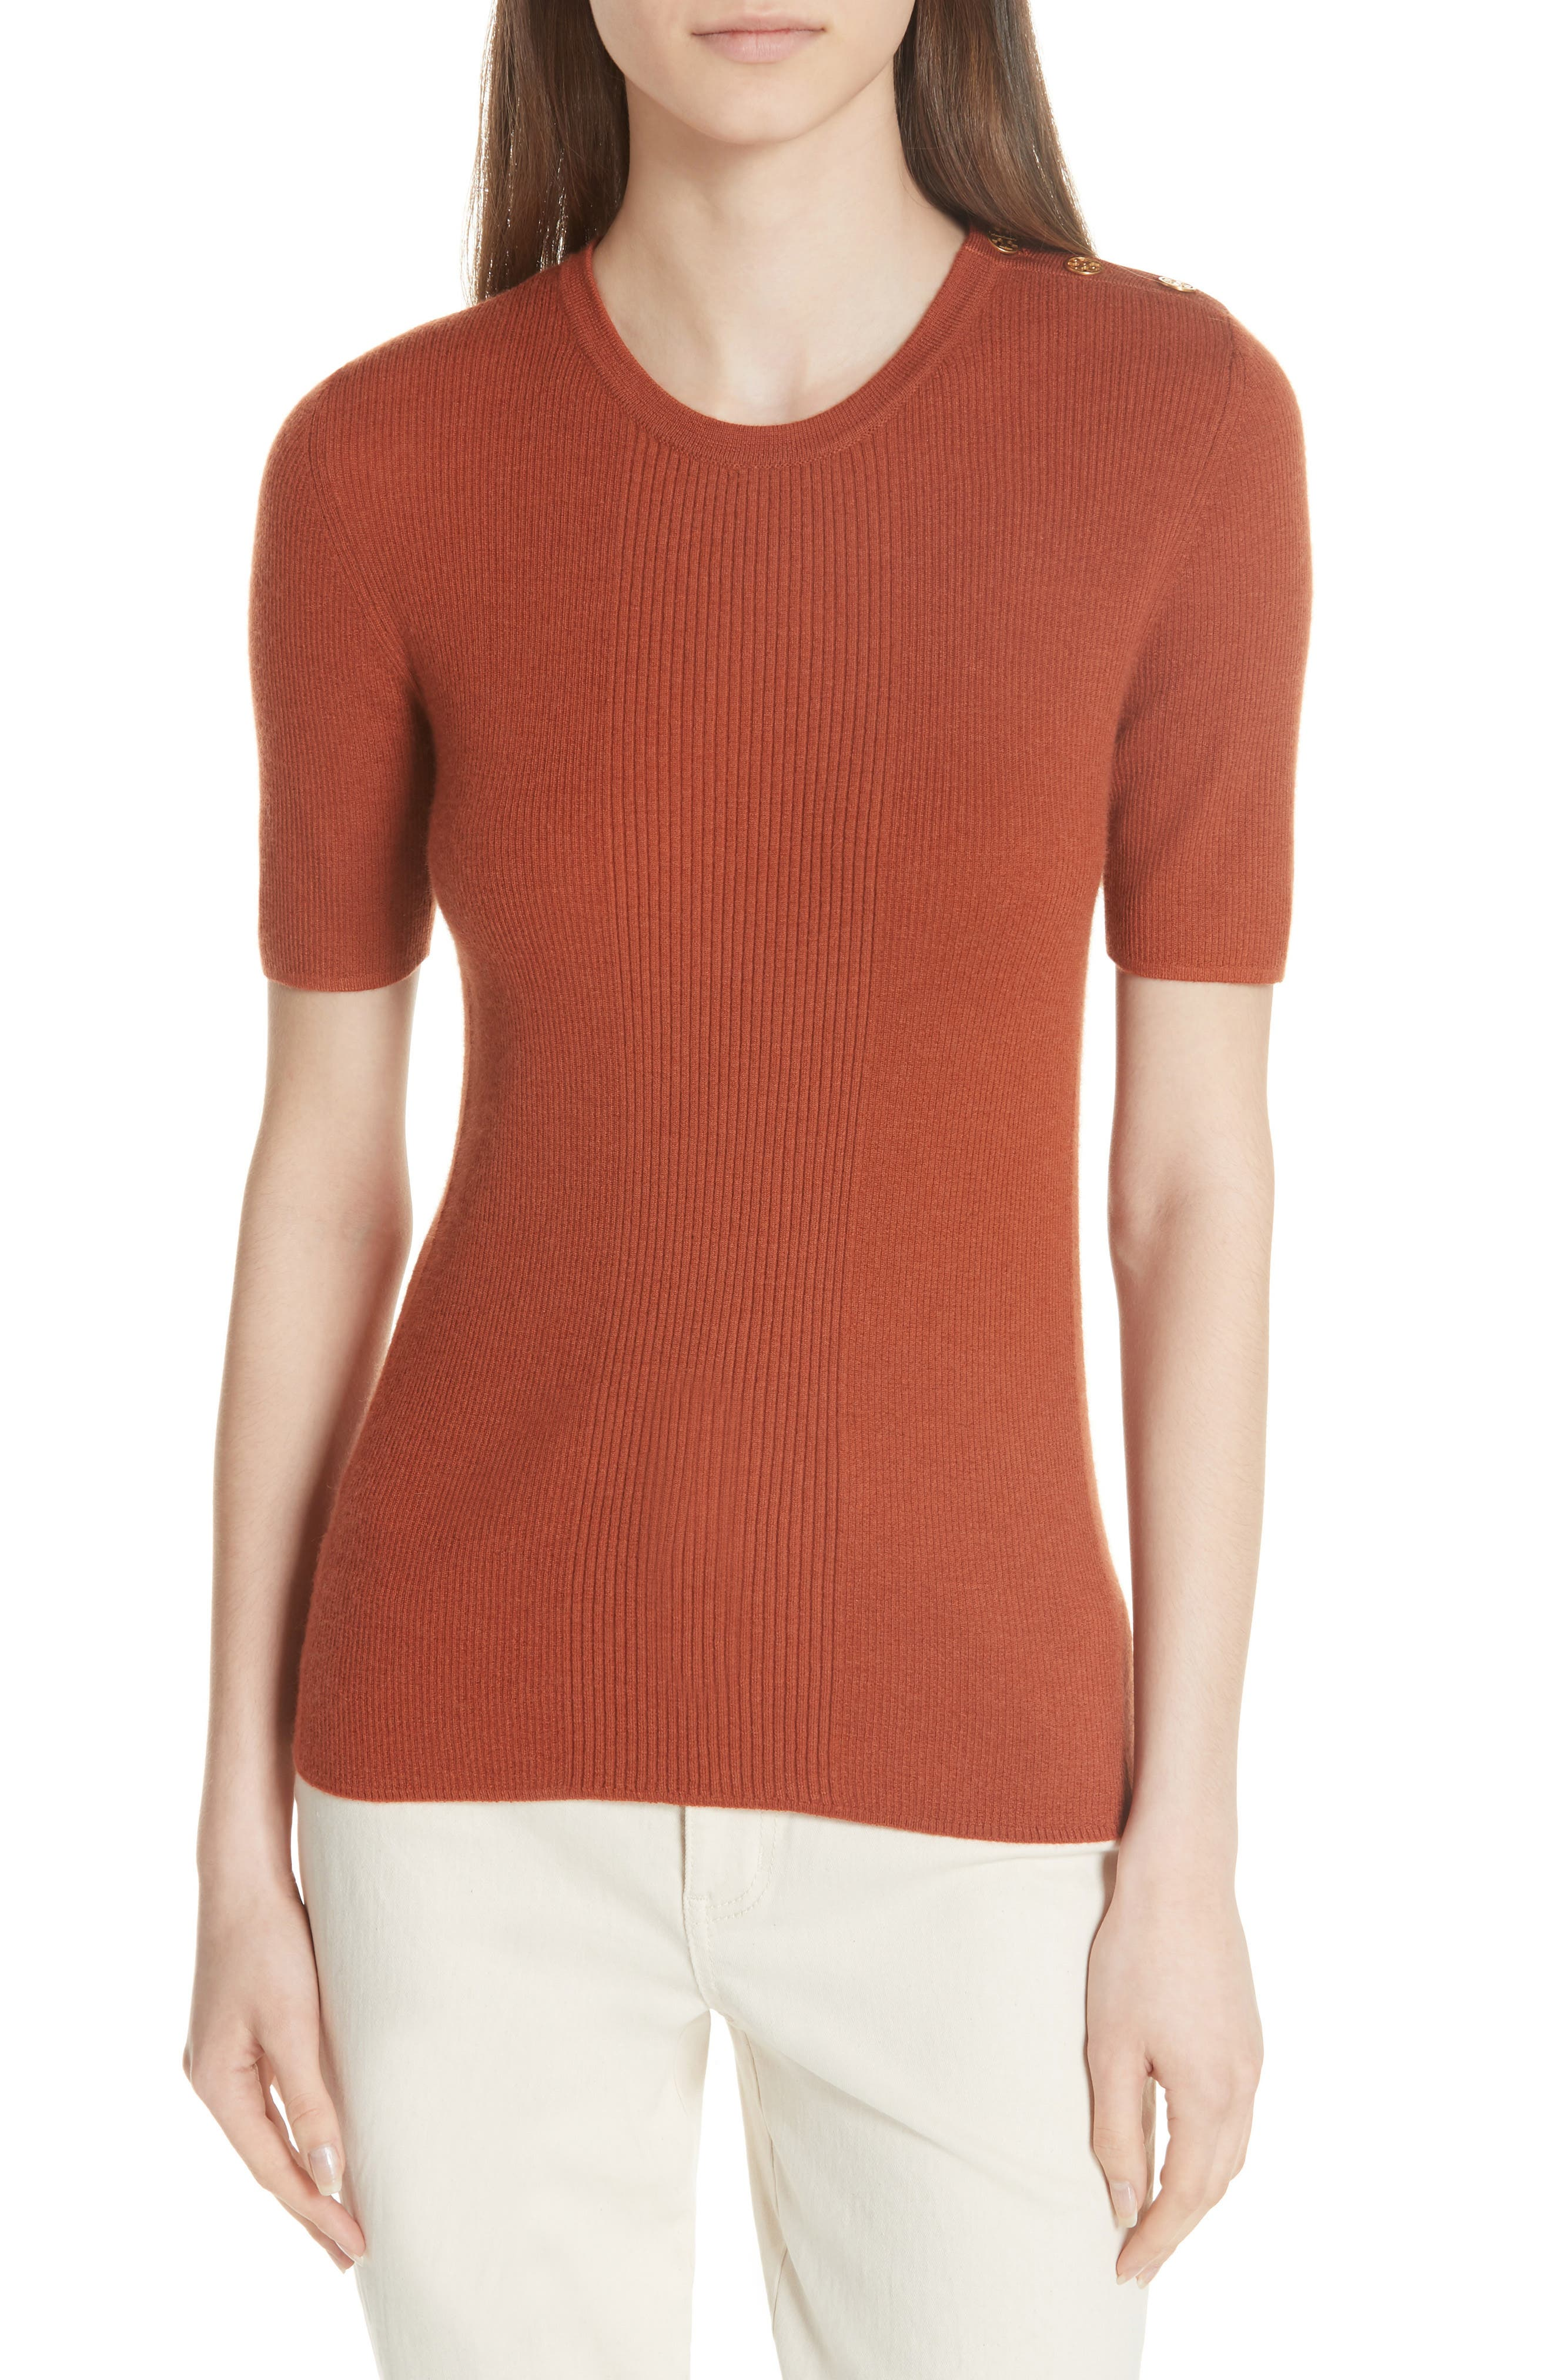 Taylor Ribbed Cashmere Sweater,                             Main thumbnail 1, color,                             DESERT SPICE